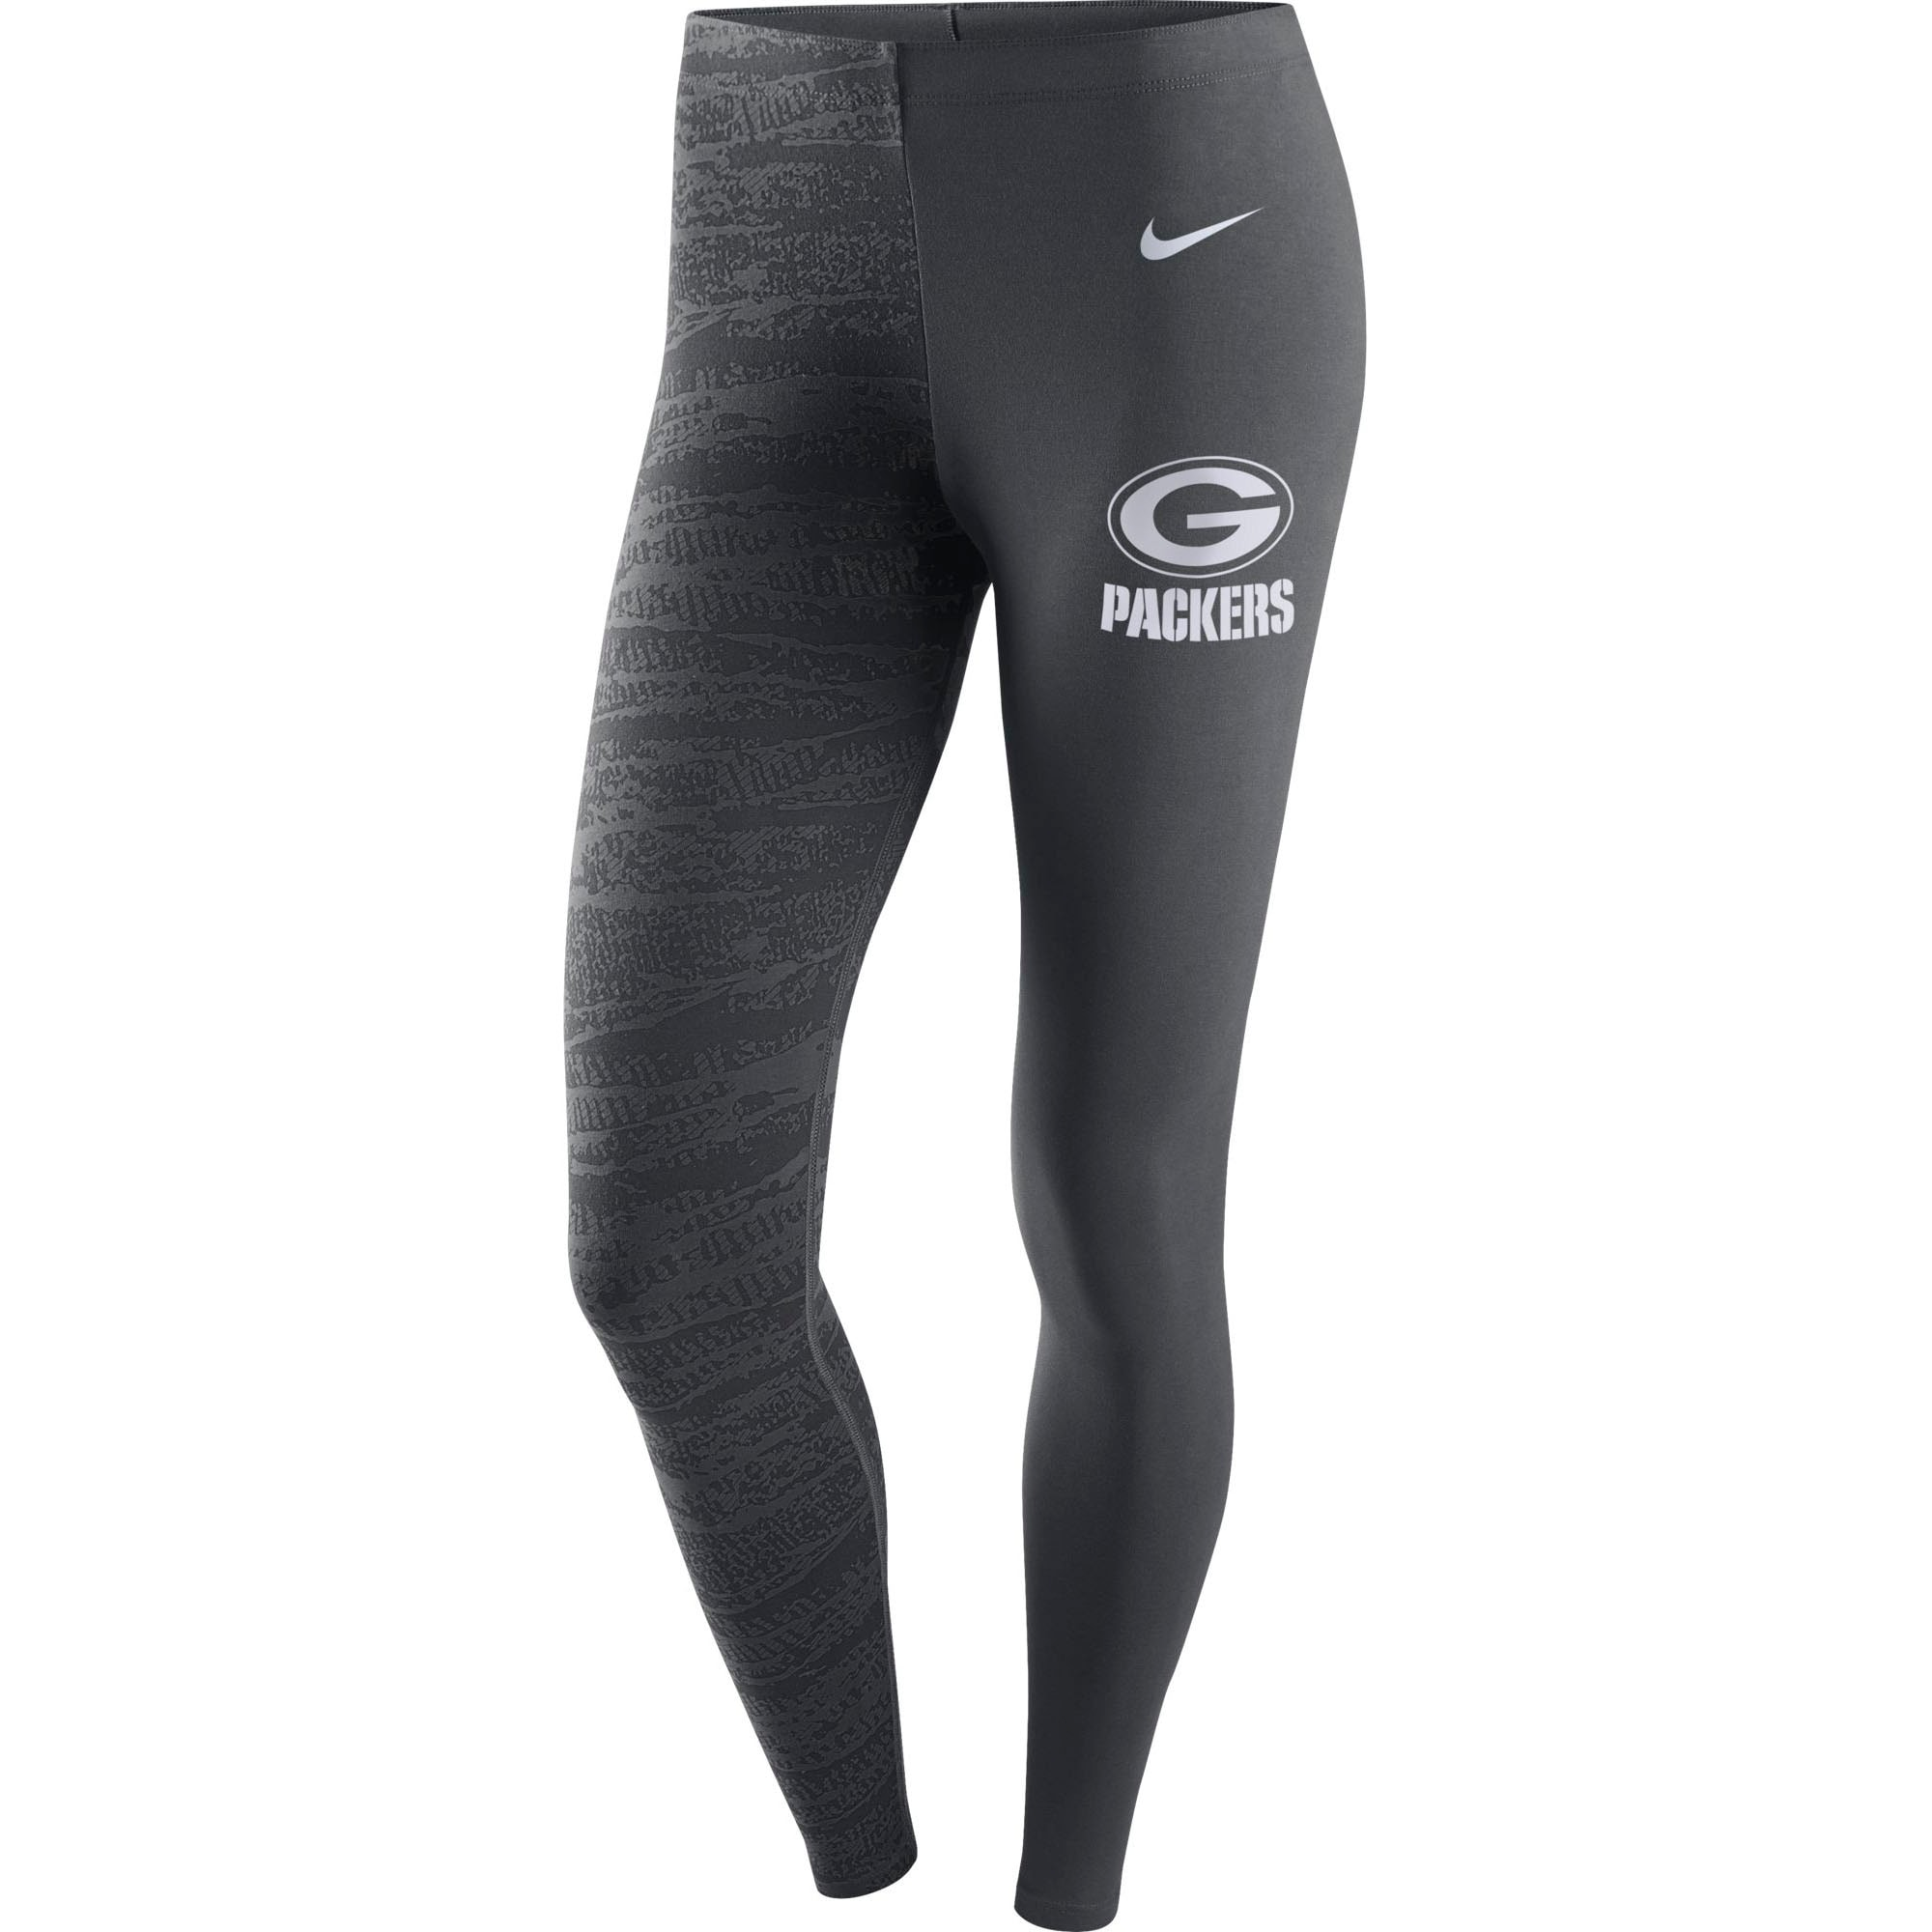 Green Bay Packers Nike Women's Leg-A-See Leggings - Anthracite